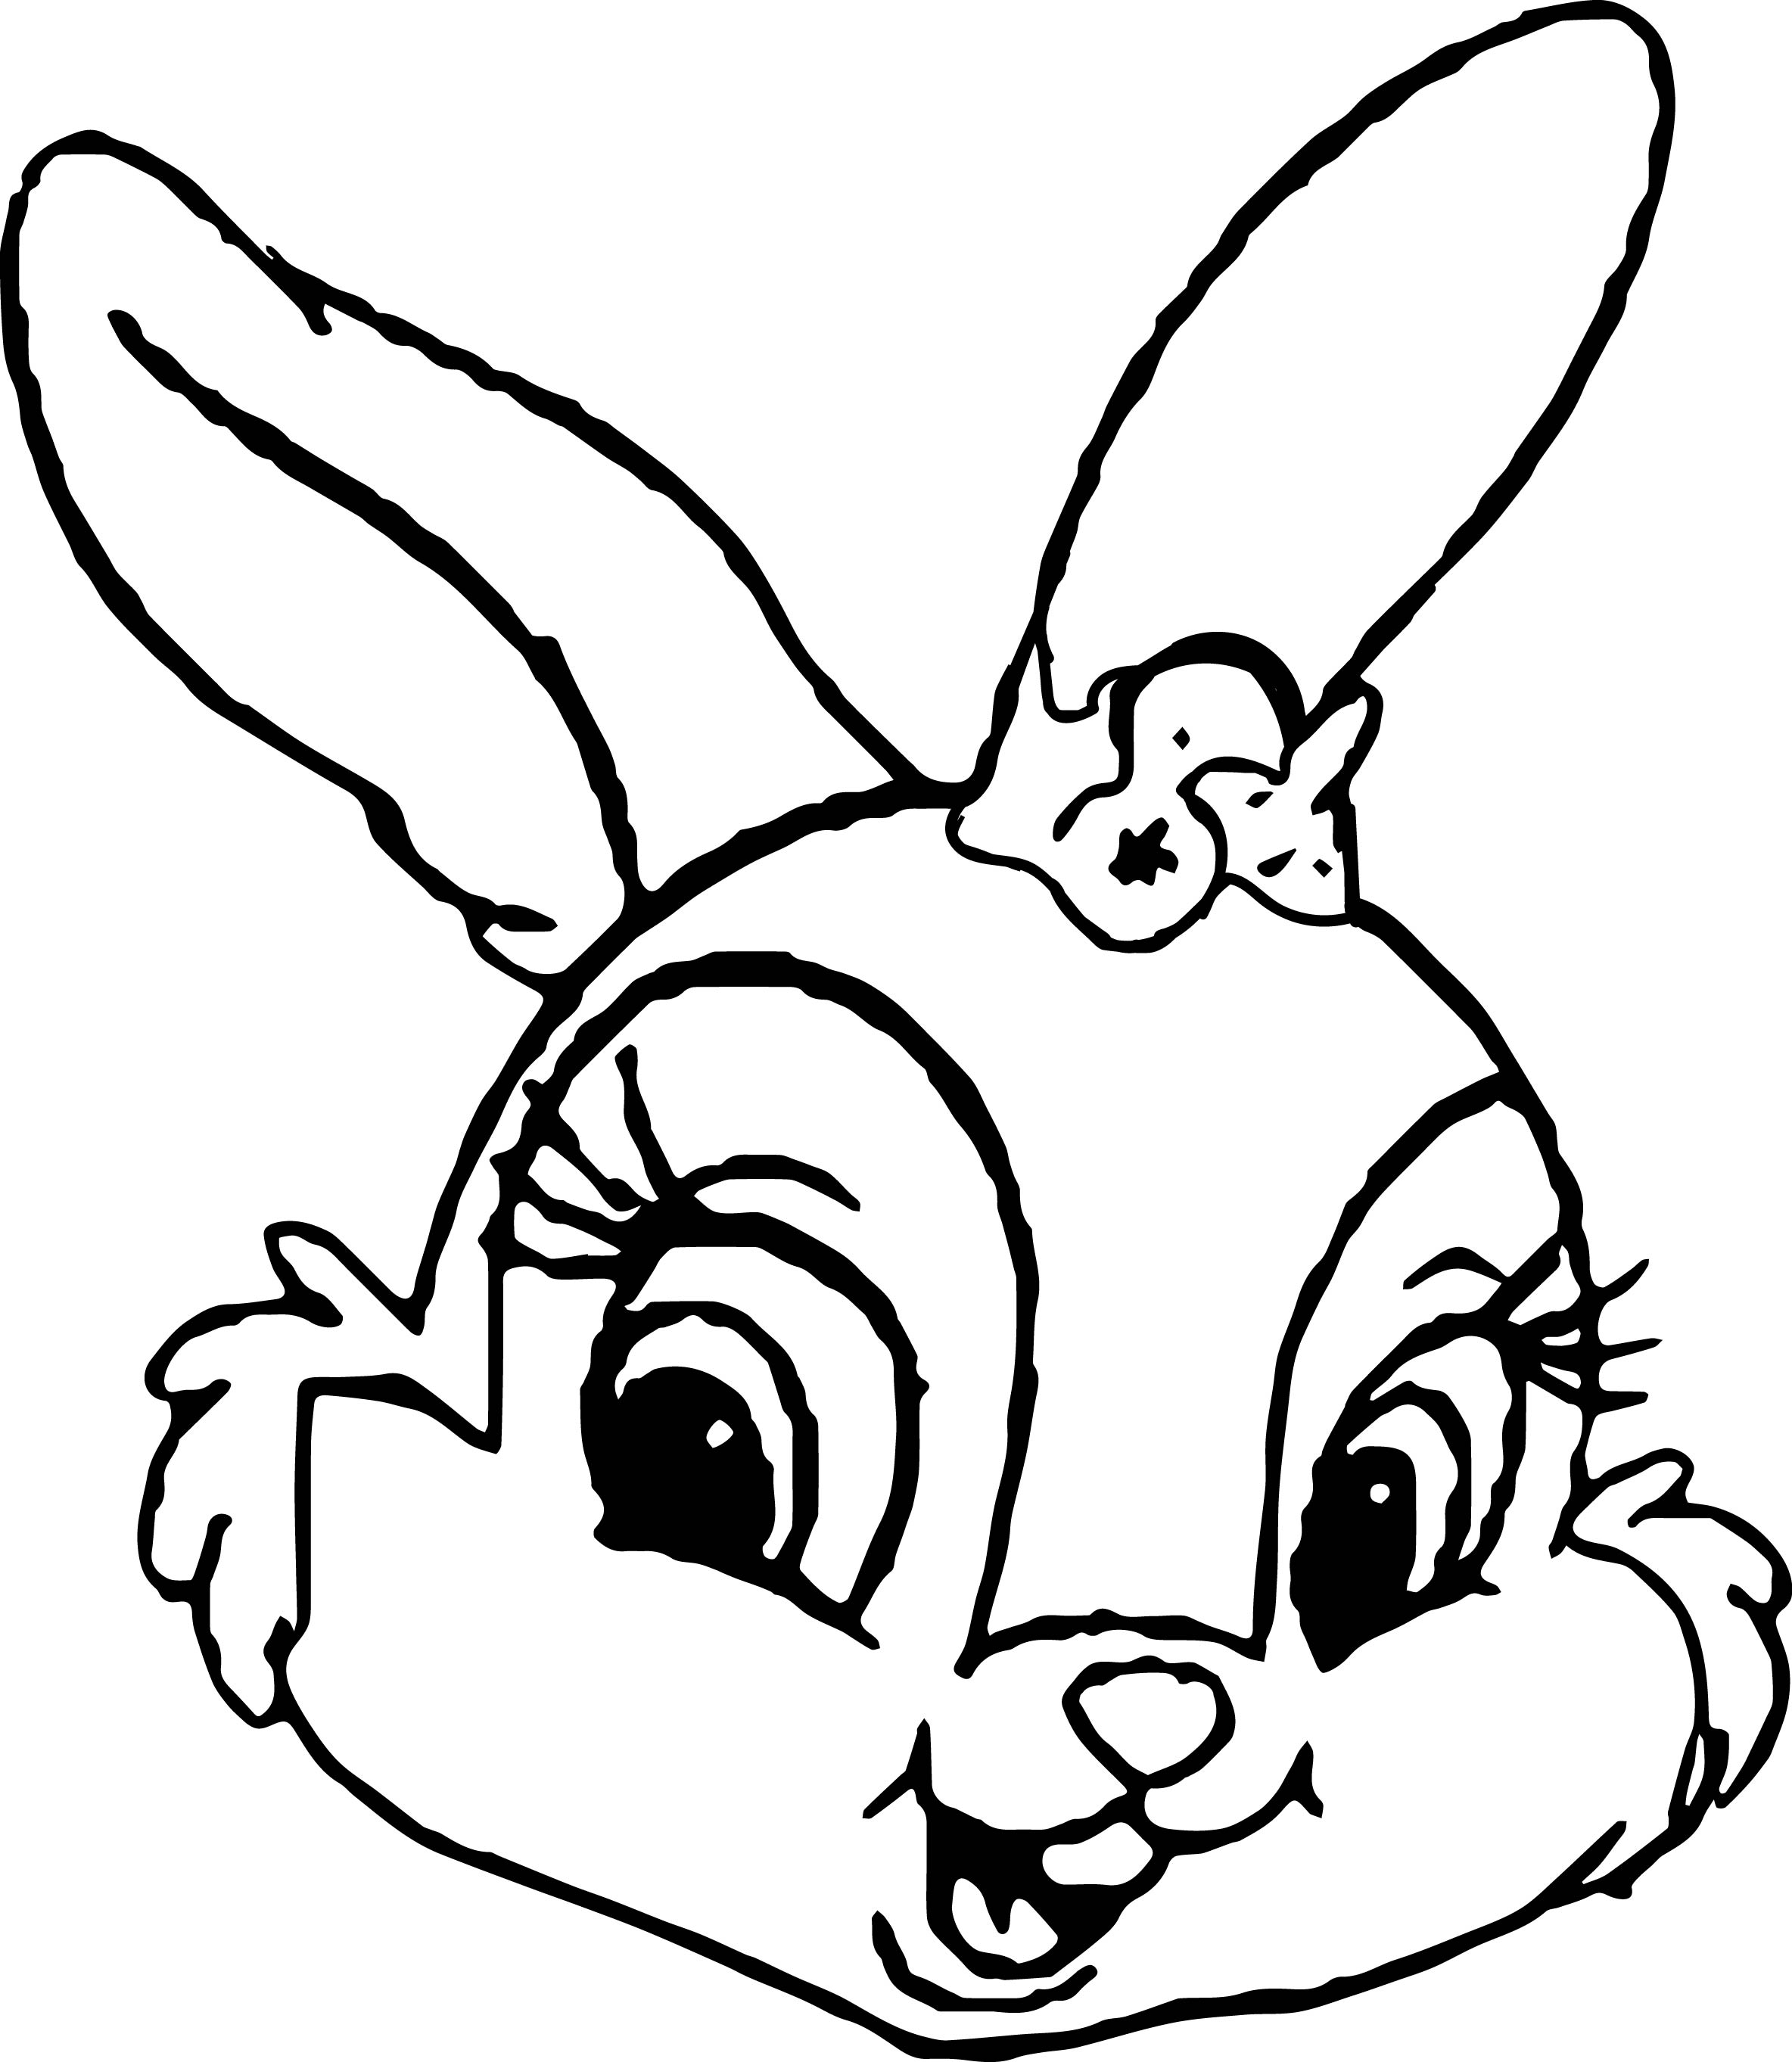 thumpers sisters and miss bunny face coloring pages wecoloringpage